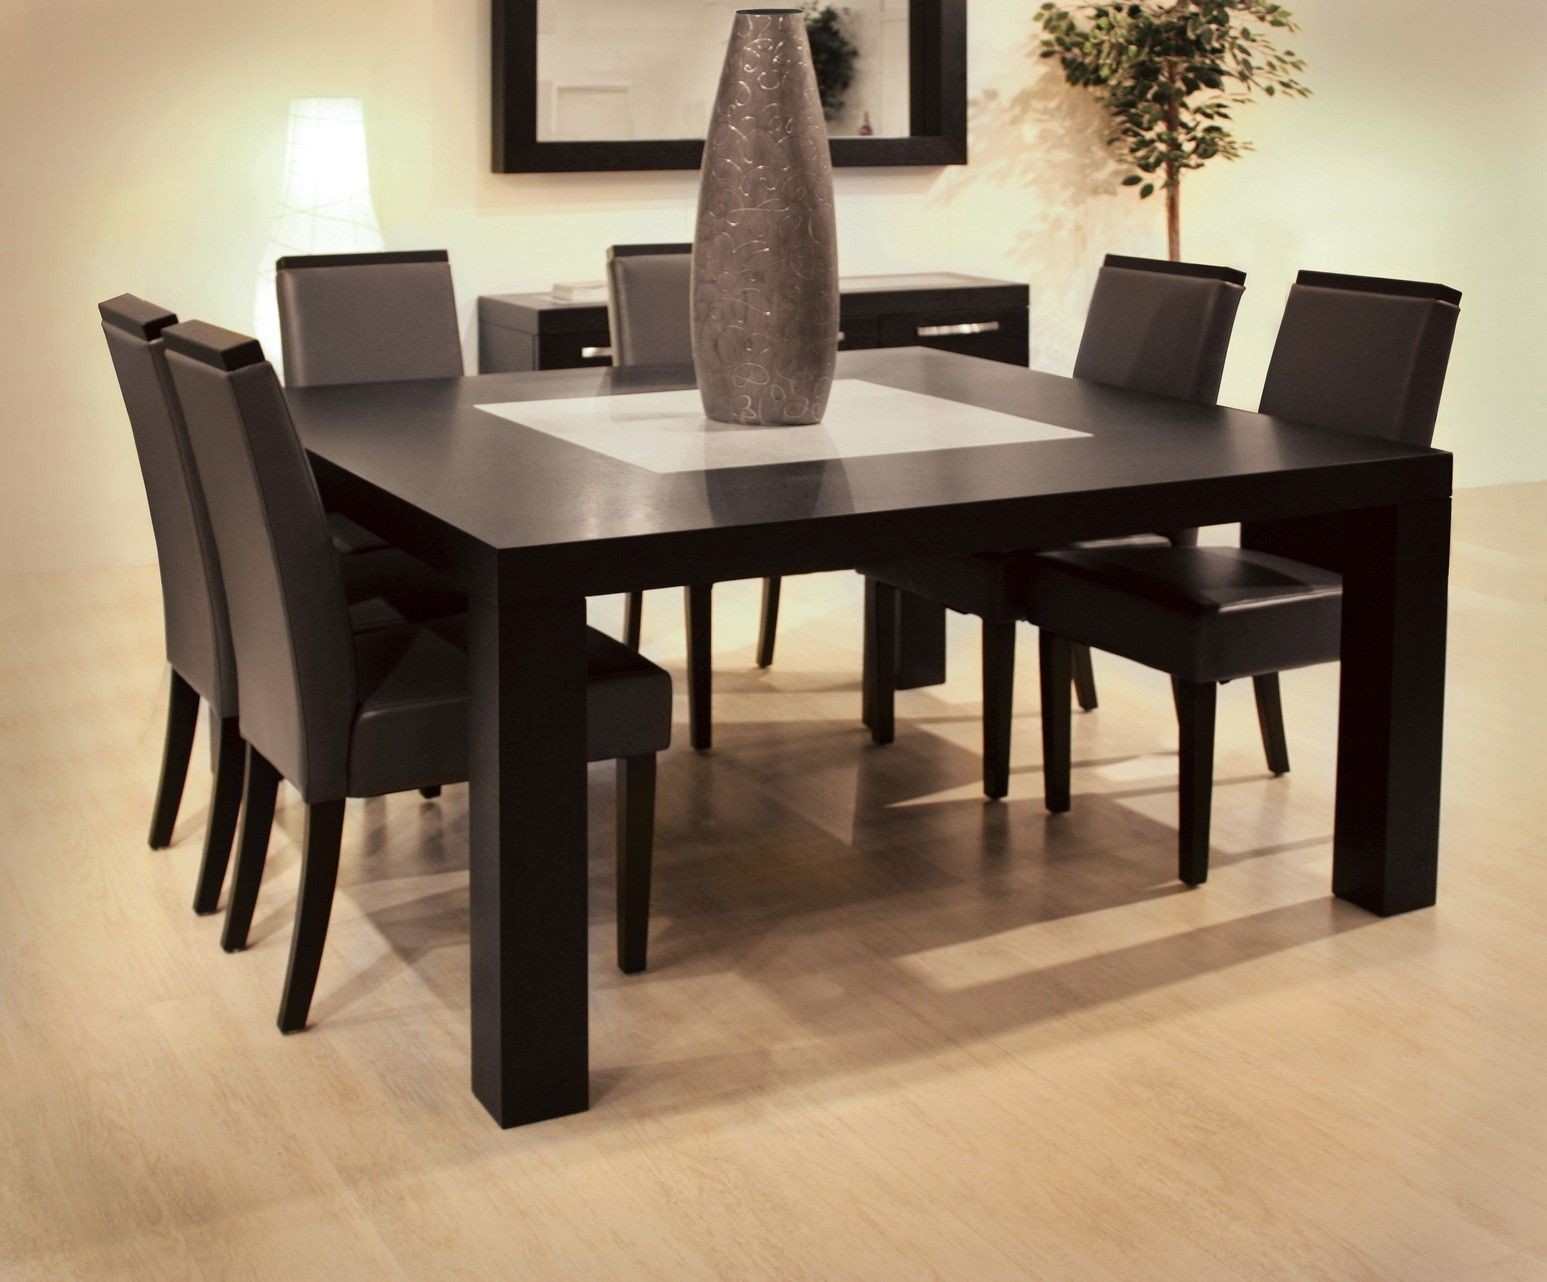 Modern dining table designs with glass top - Square Dining Table Counter Height Table Marble Top